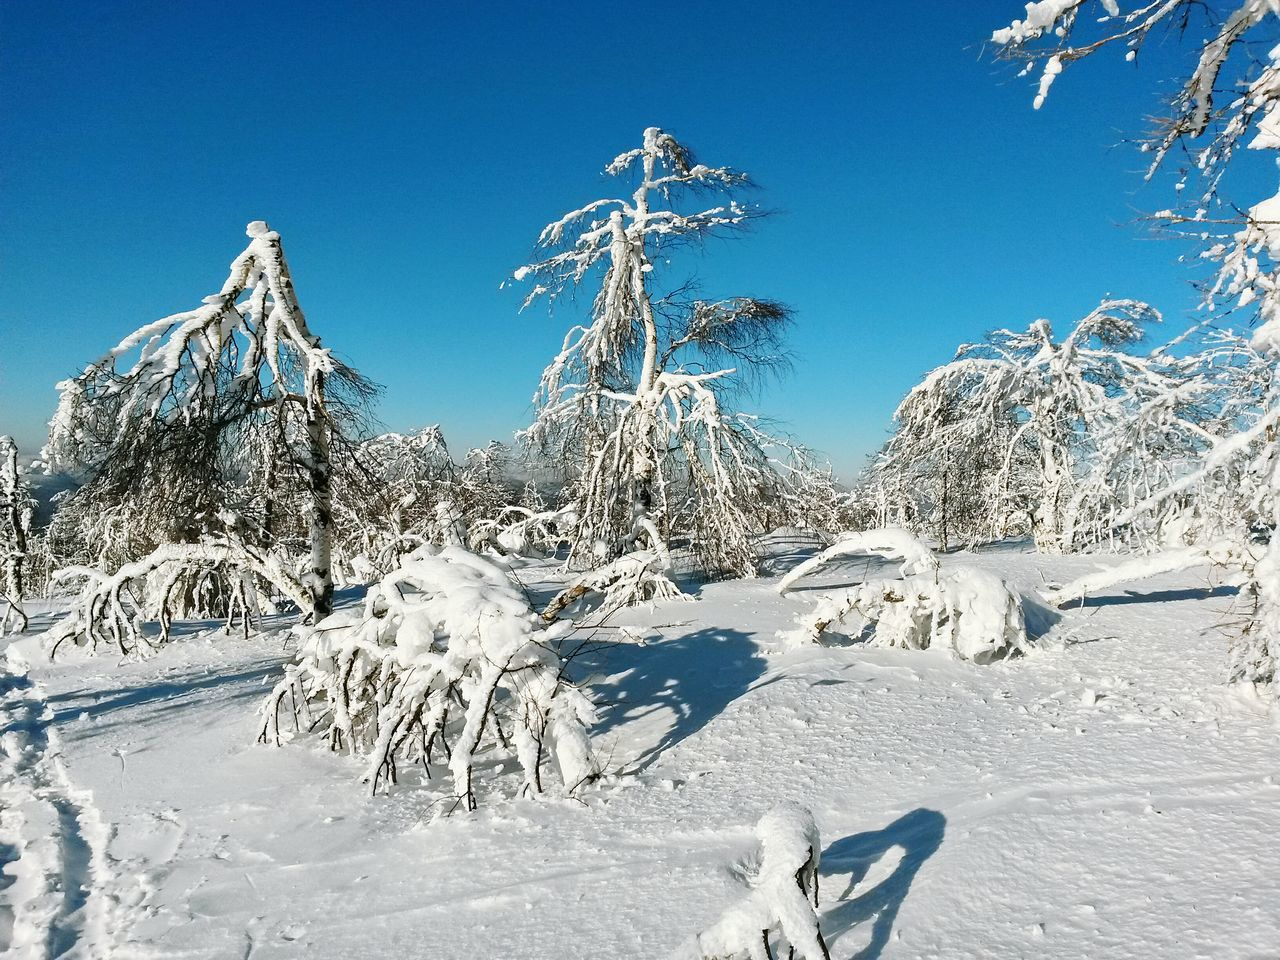 snow, cold temperature, winter, blue, white color, nature, tranquil scene, frozen, white, tranquility, outdoors, beauty in nature, clear sky, tree, scenics, day, landscape, sunlight, no people, mountain, sky, bare tree